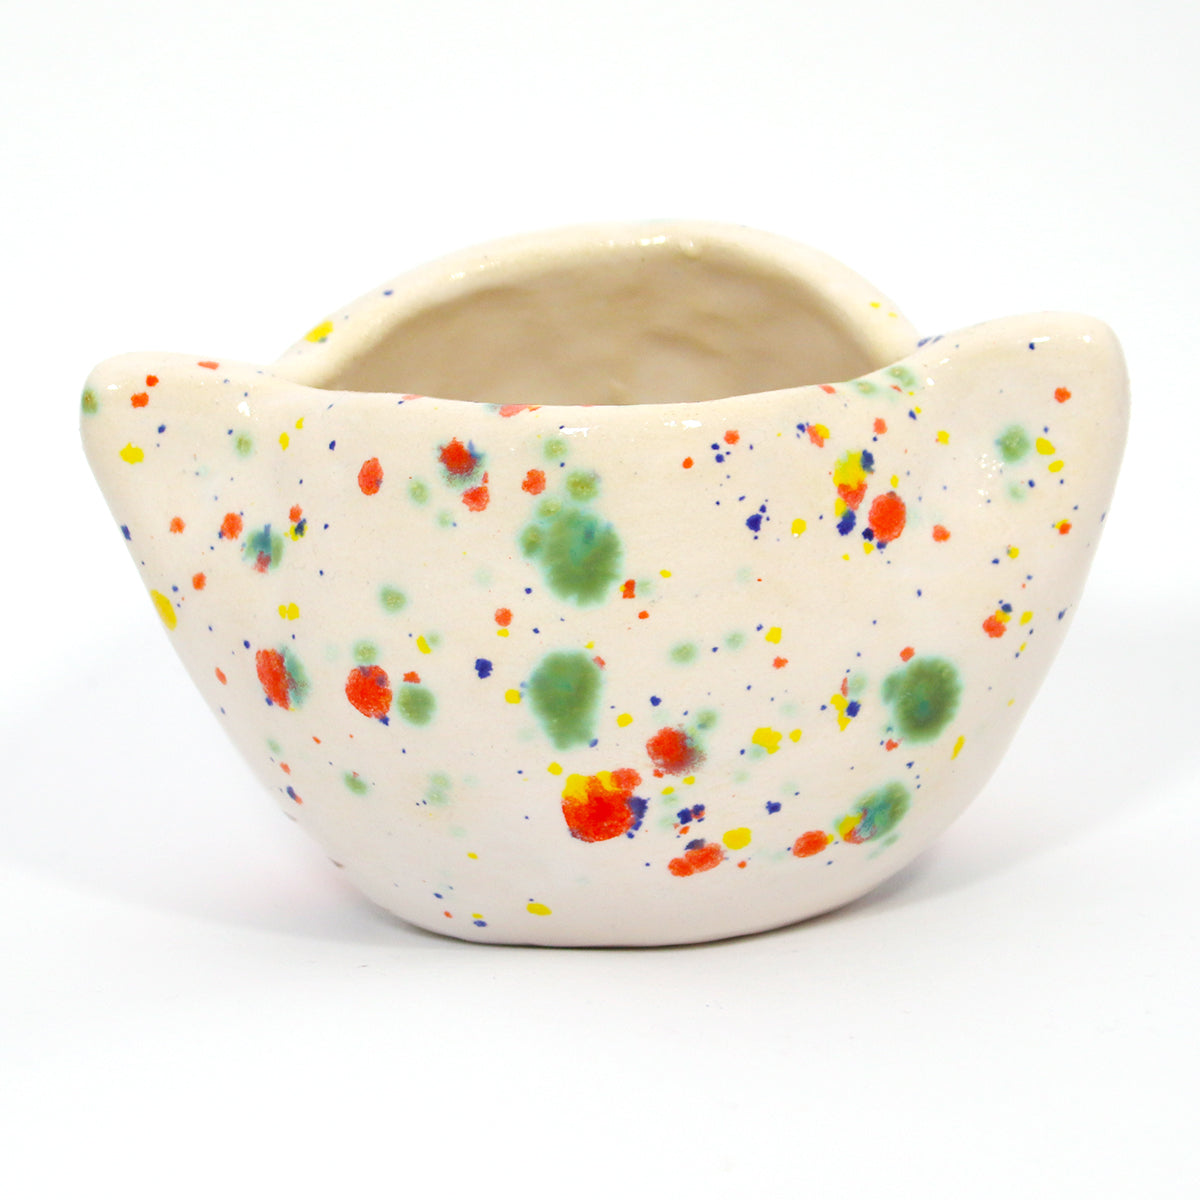 Ceramic Kitty Planter #1050 - S